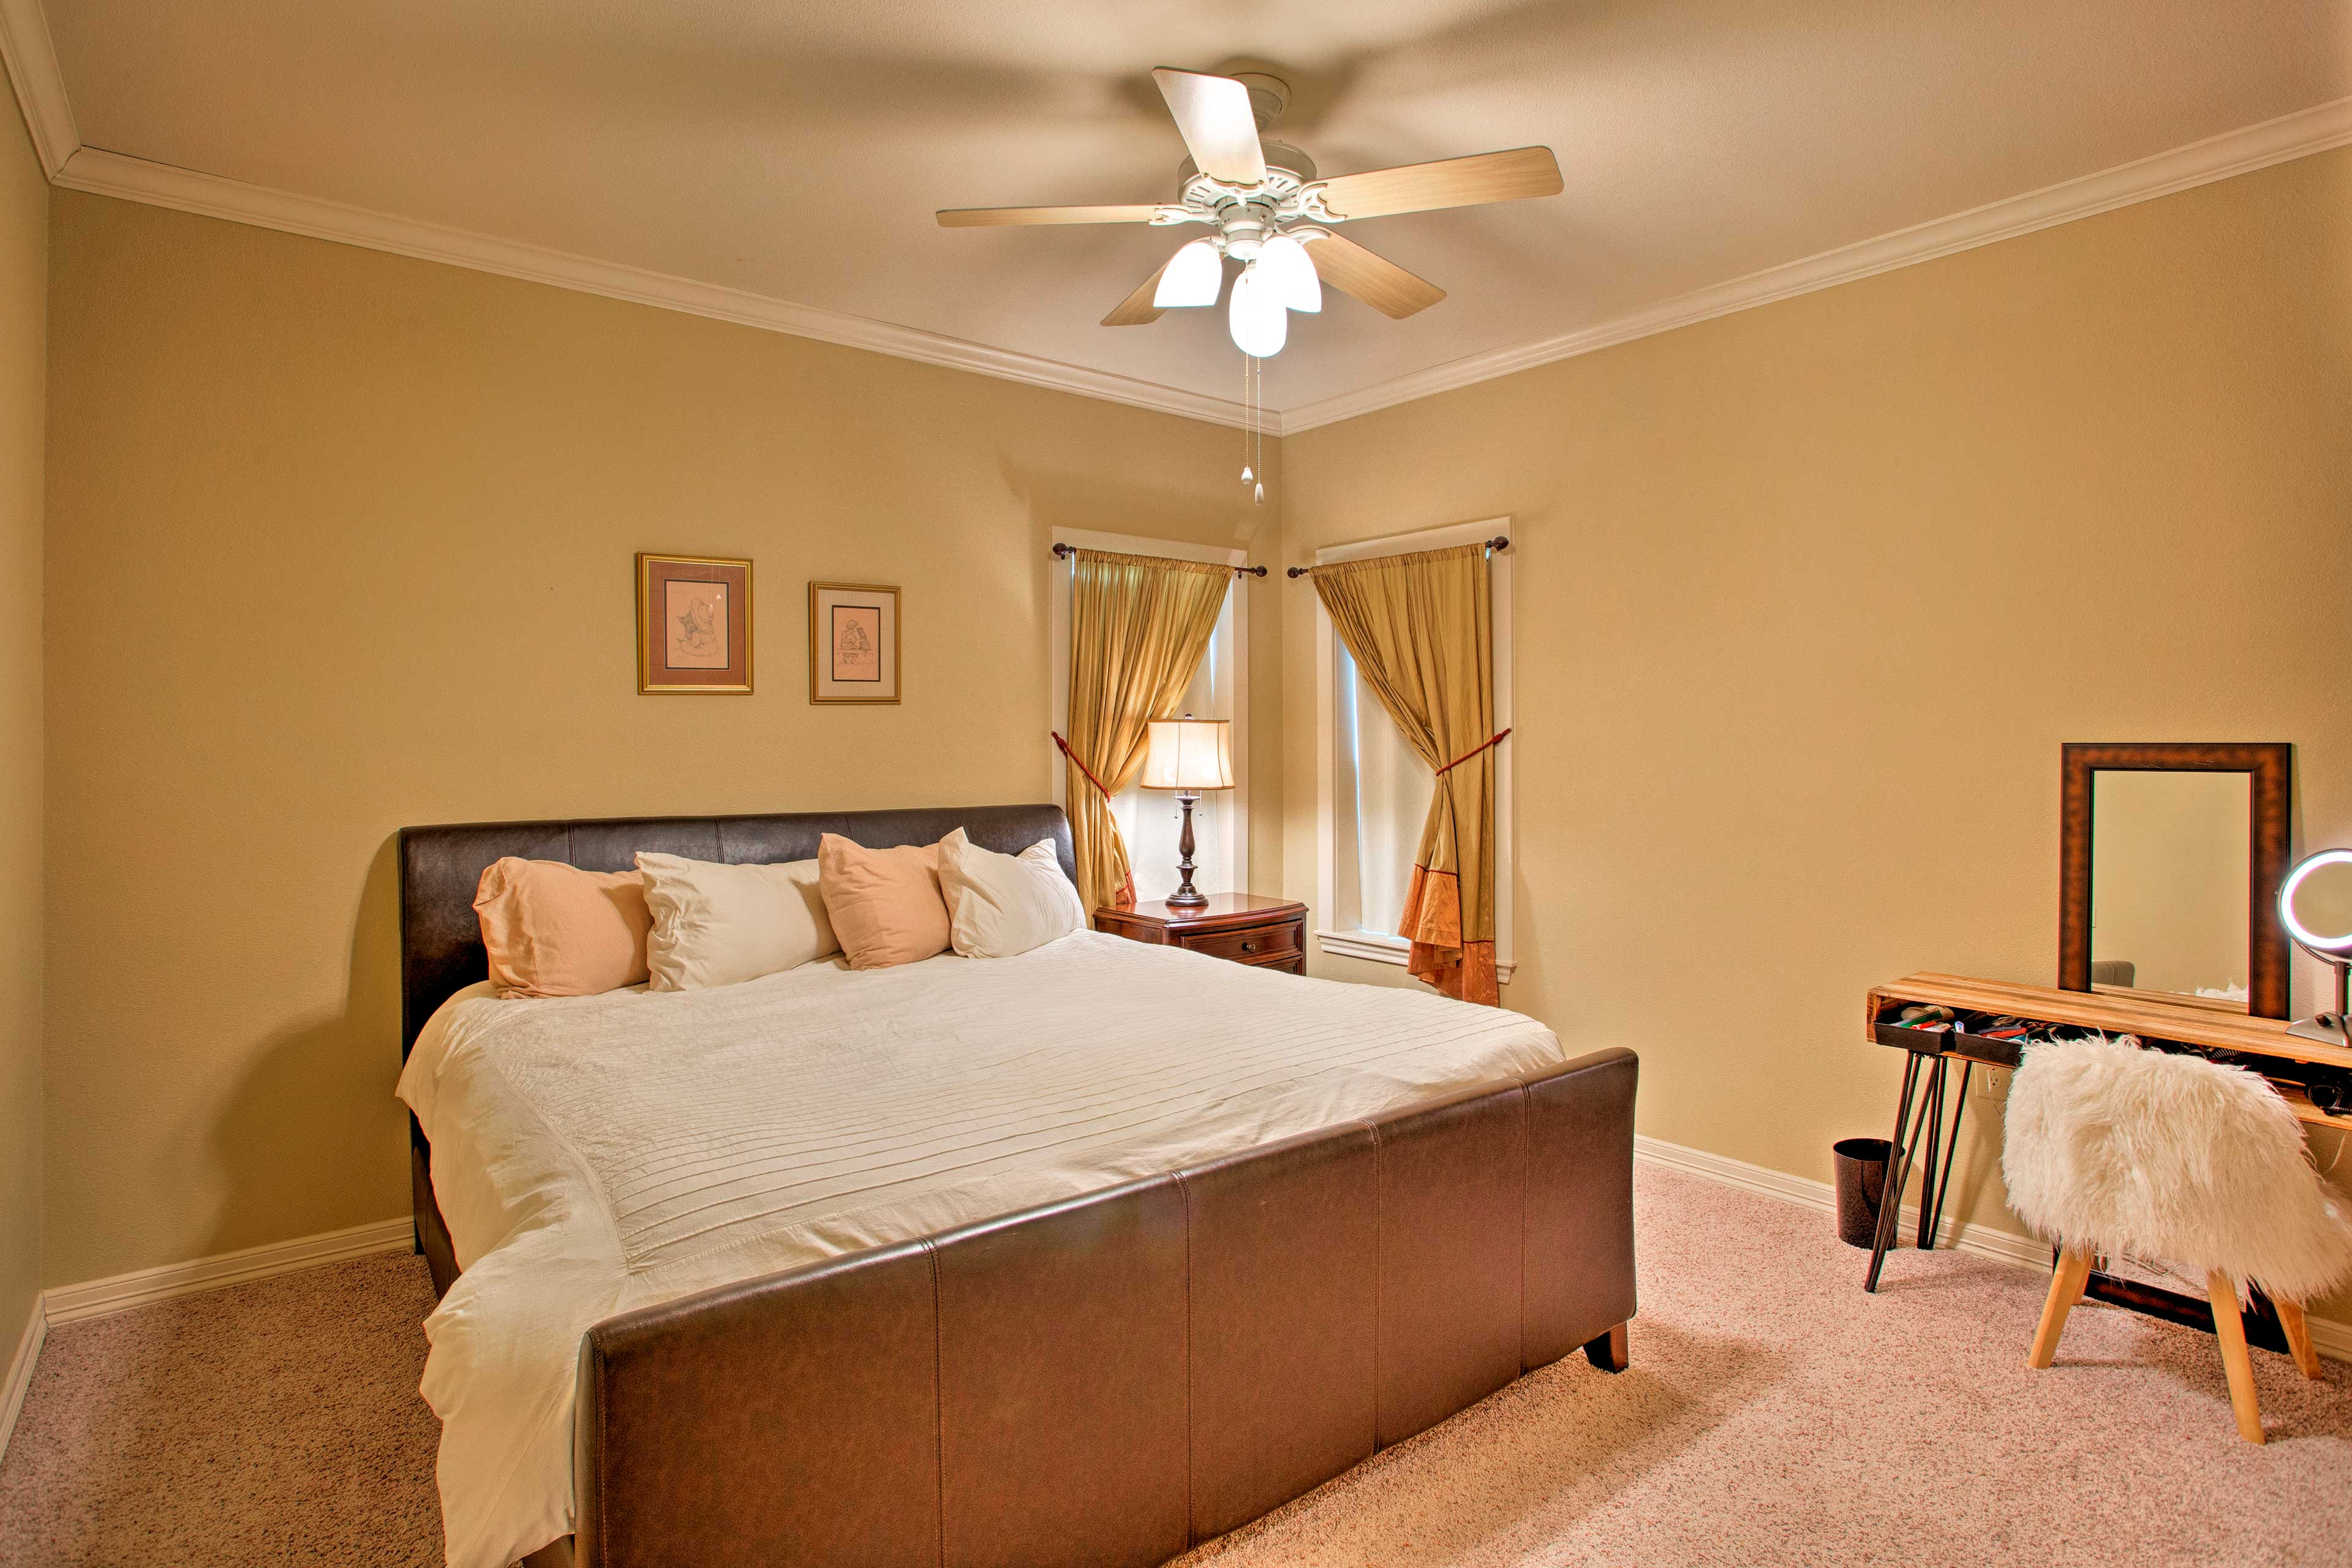 You'll find a separate desk space in this king bedroom.